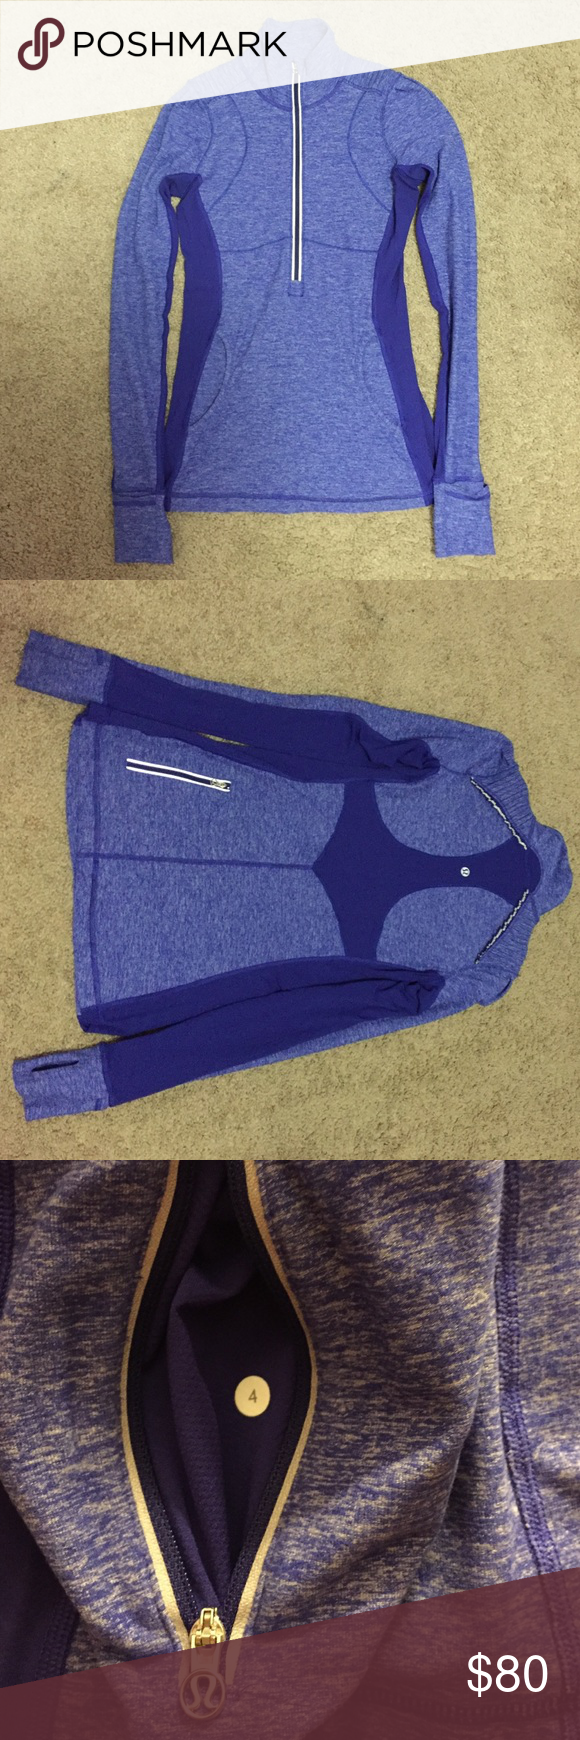 Lululemon Star Runner Pullover Like new in excellent condition! Worn only a couple of times. Great for running. Big pocket in the front with little pockets inside and zipper pocket on the back. lululemon athletica Jackets & Coats